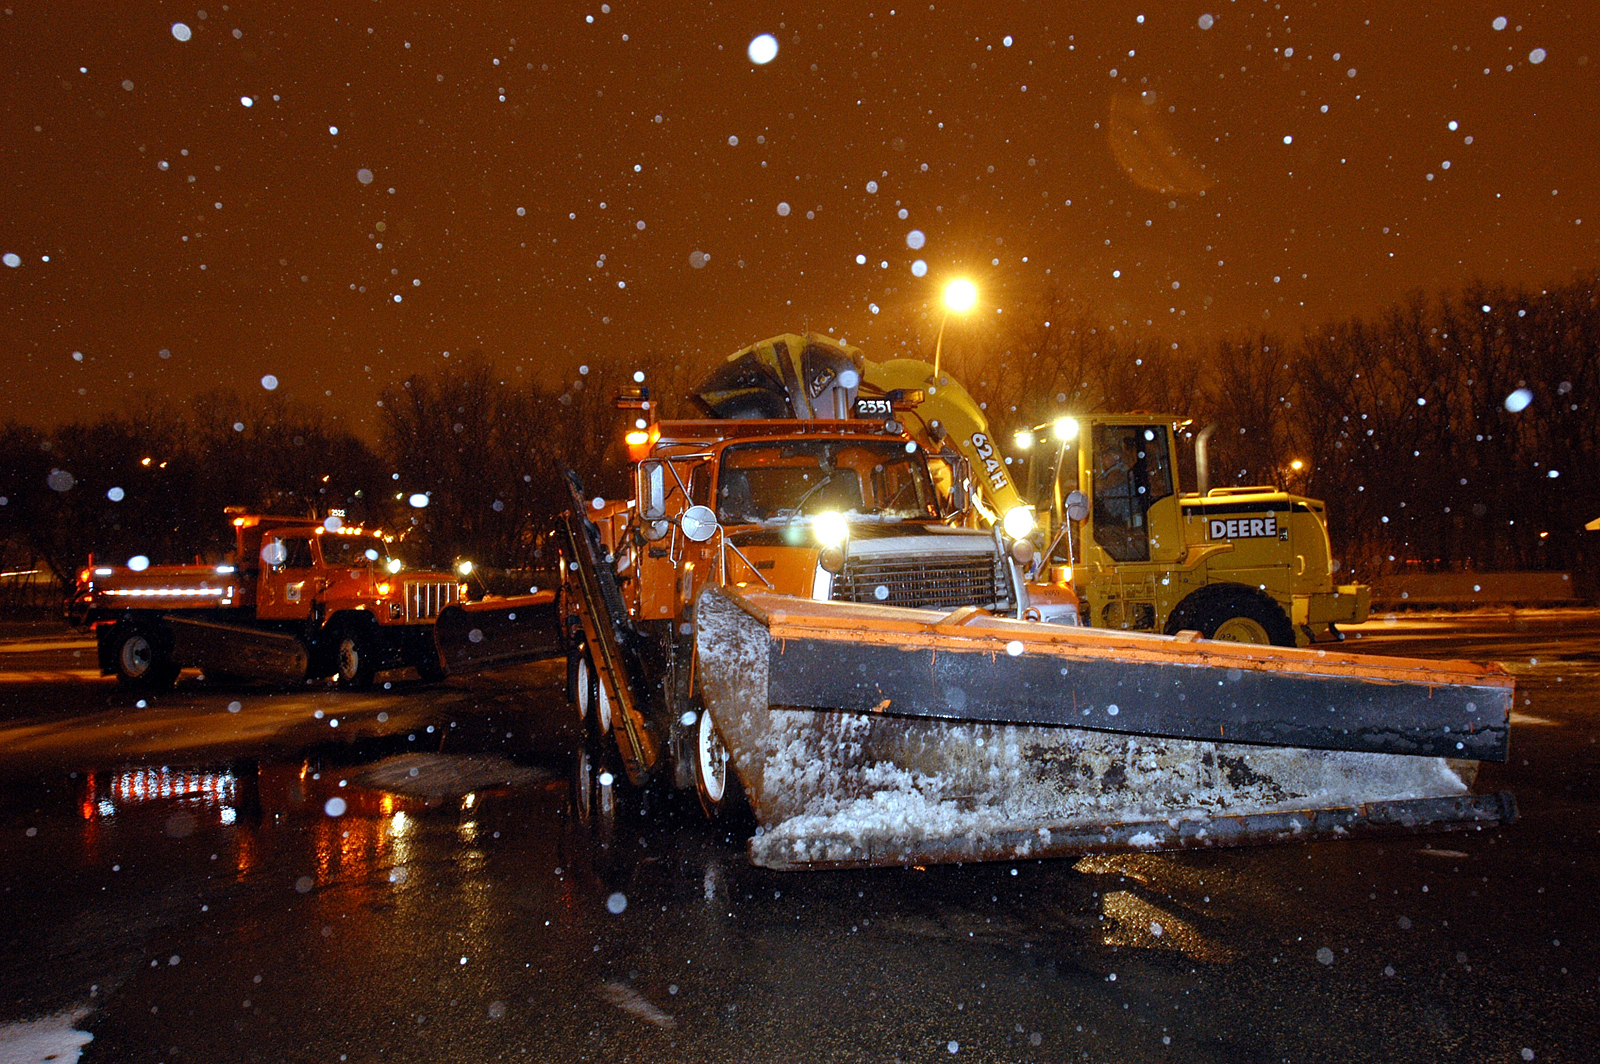 Snowplows and other winter maintenance vehicles clearing roads during a nighttime snowstorm.